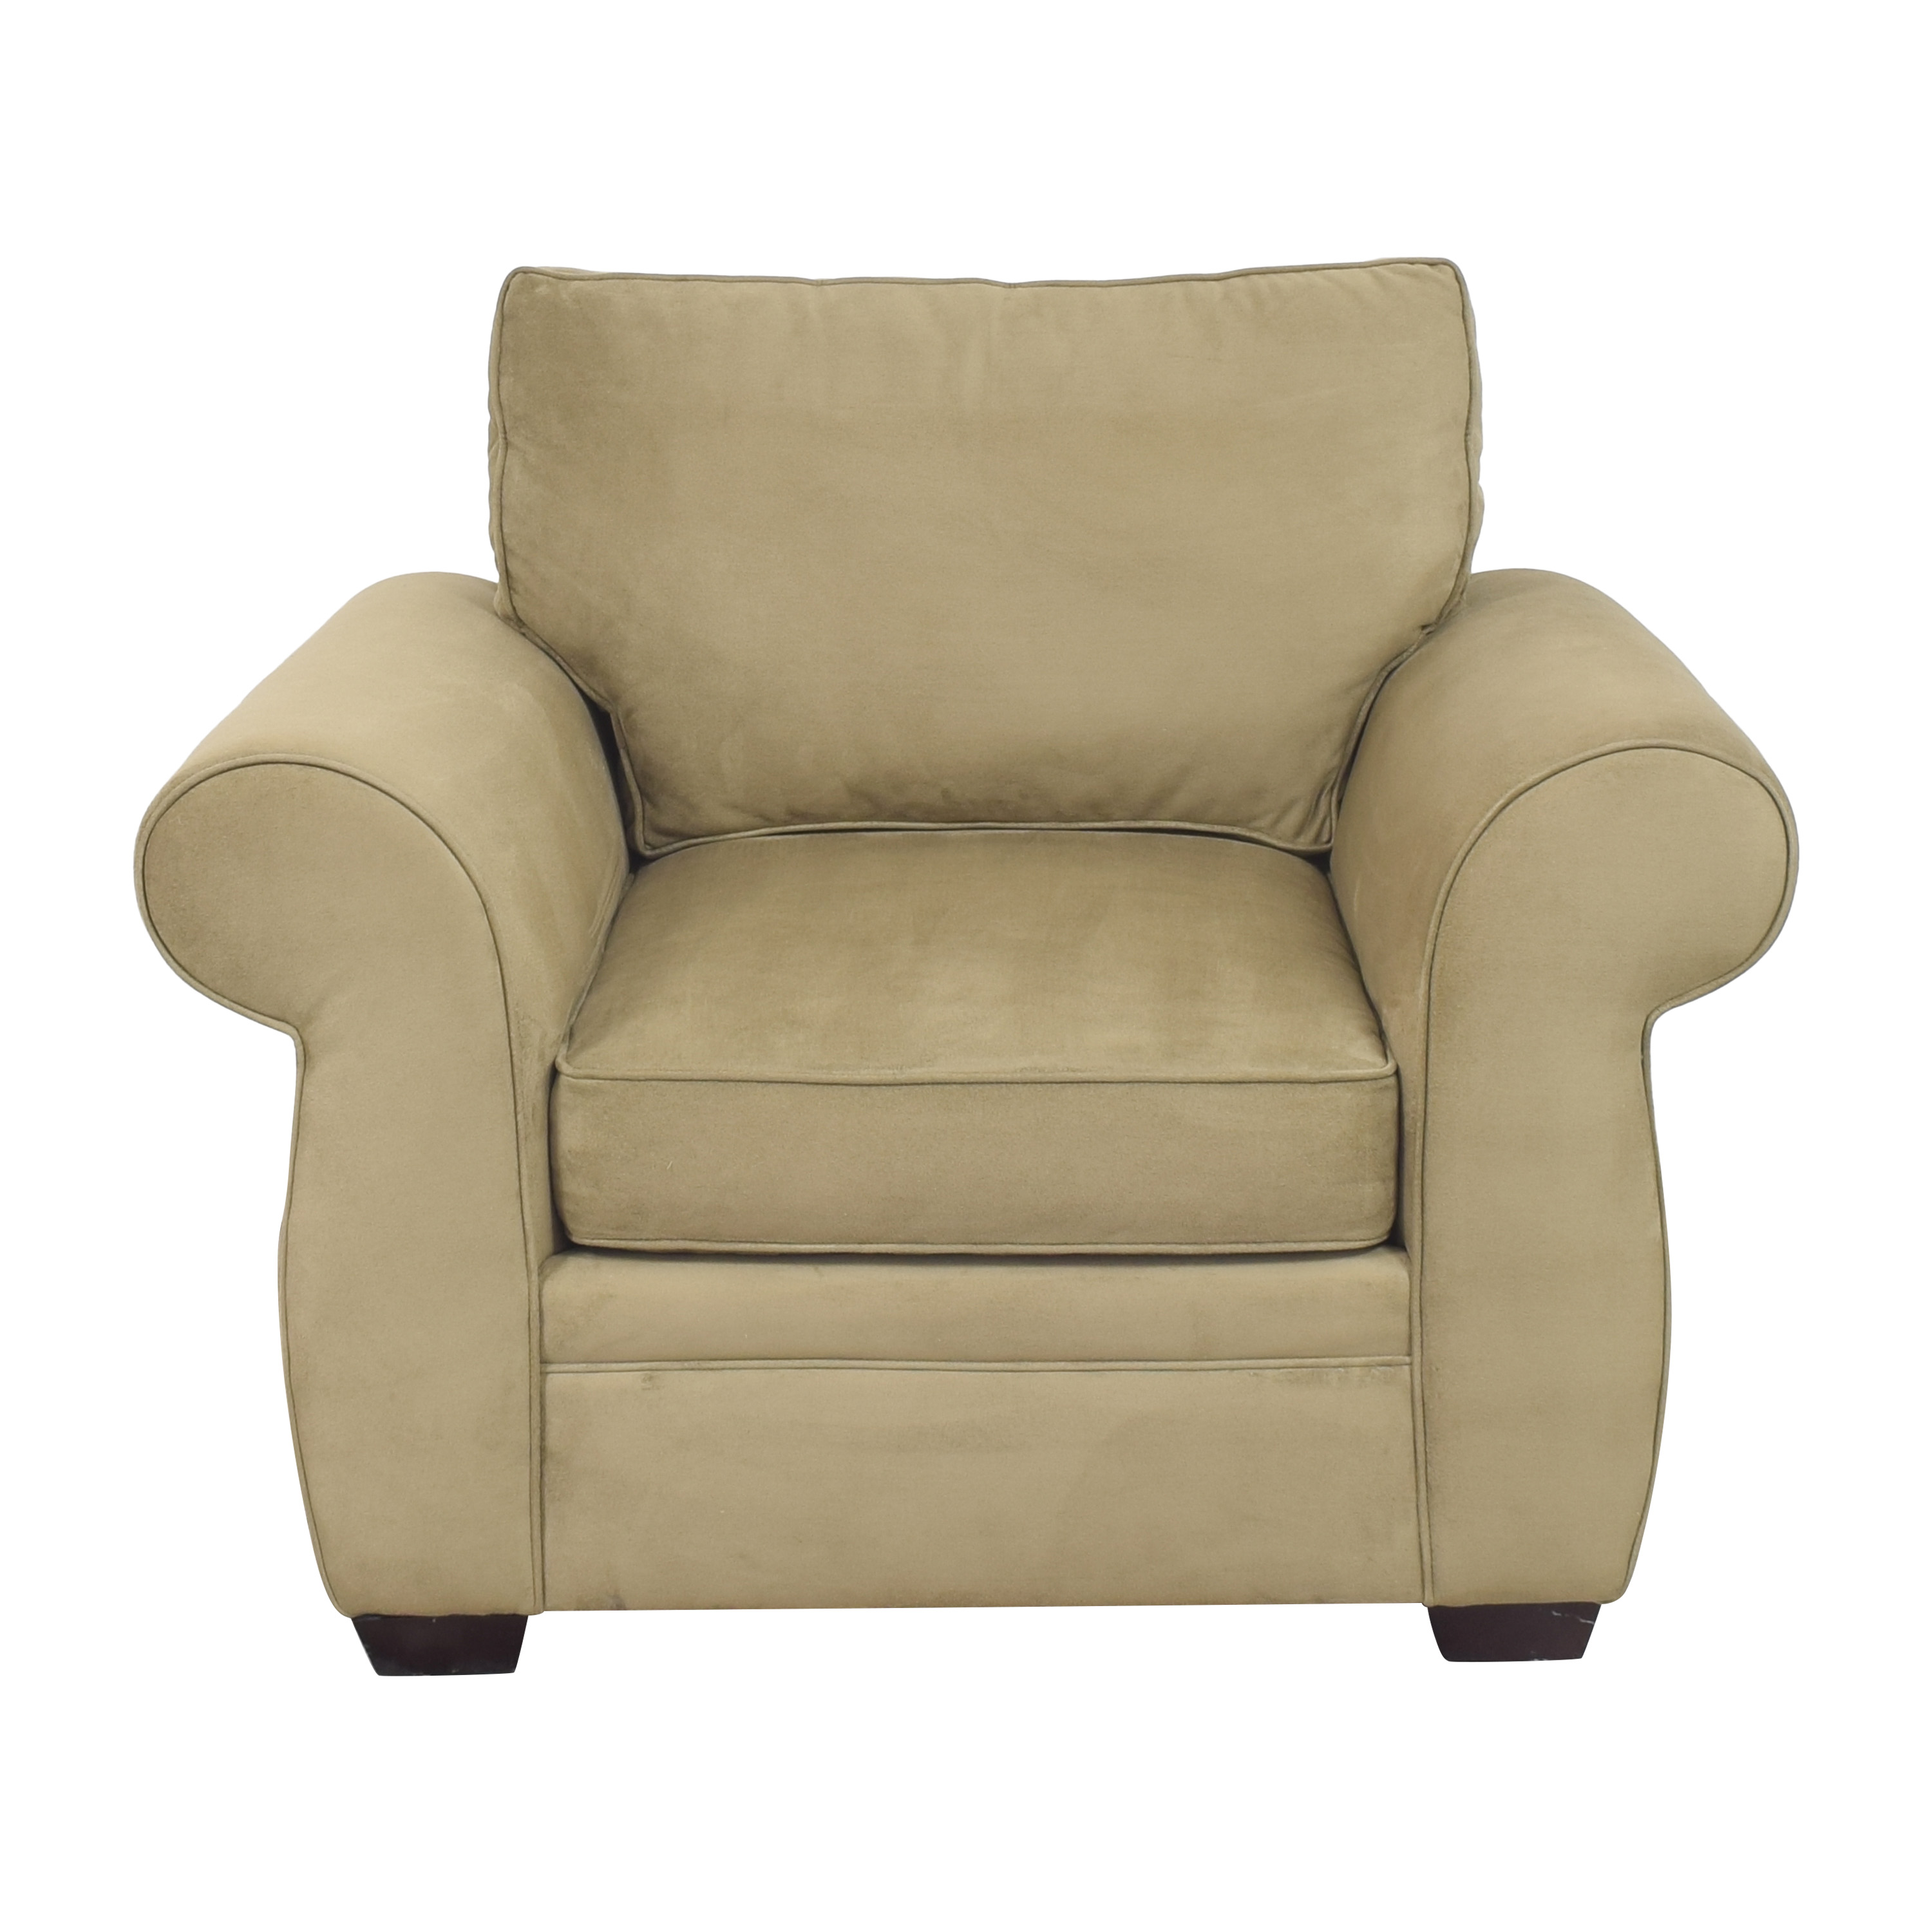 Pottery Barn Pearce Roll Arm Upholstered Armchair sale